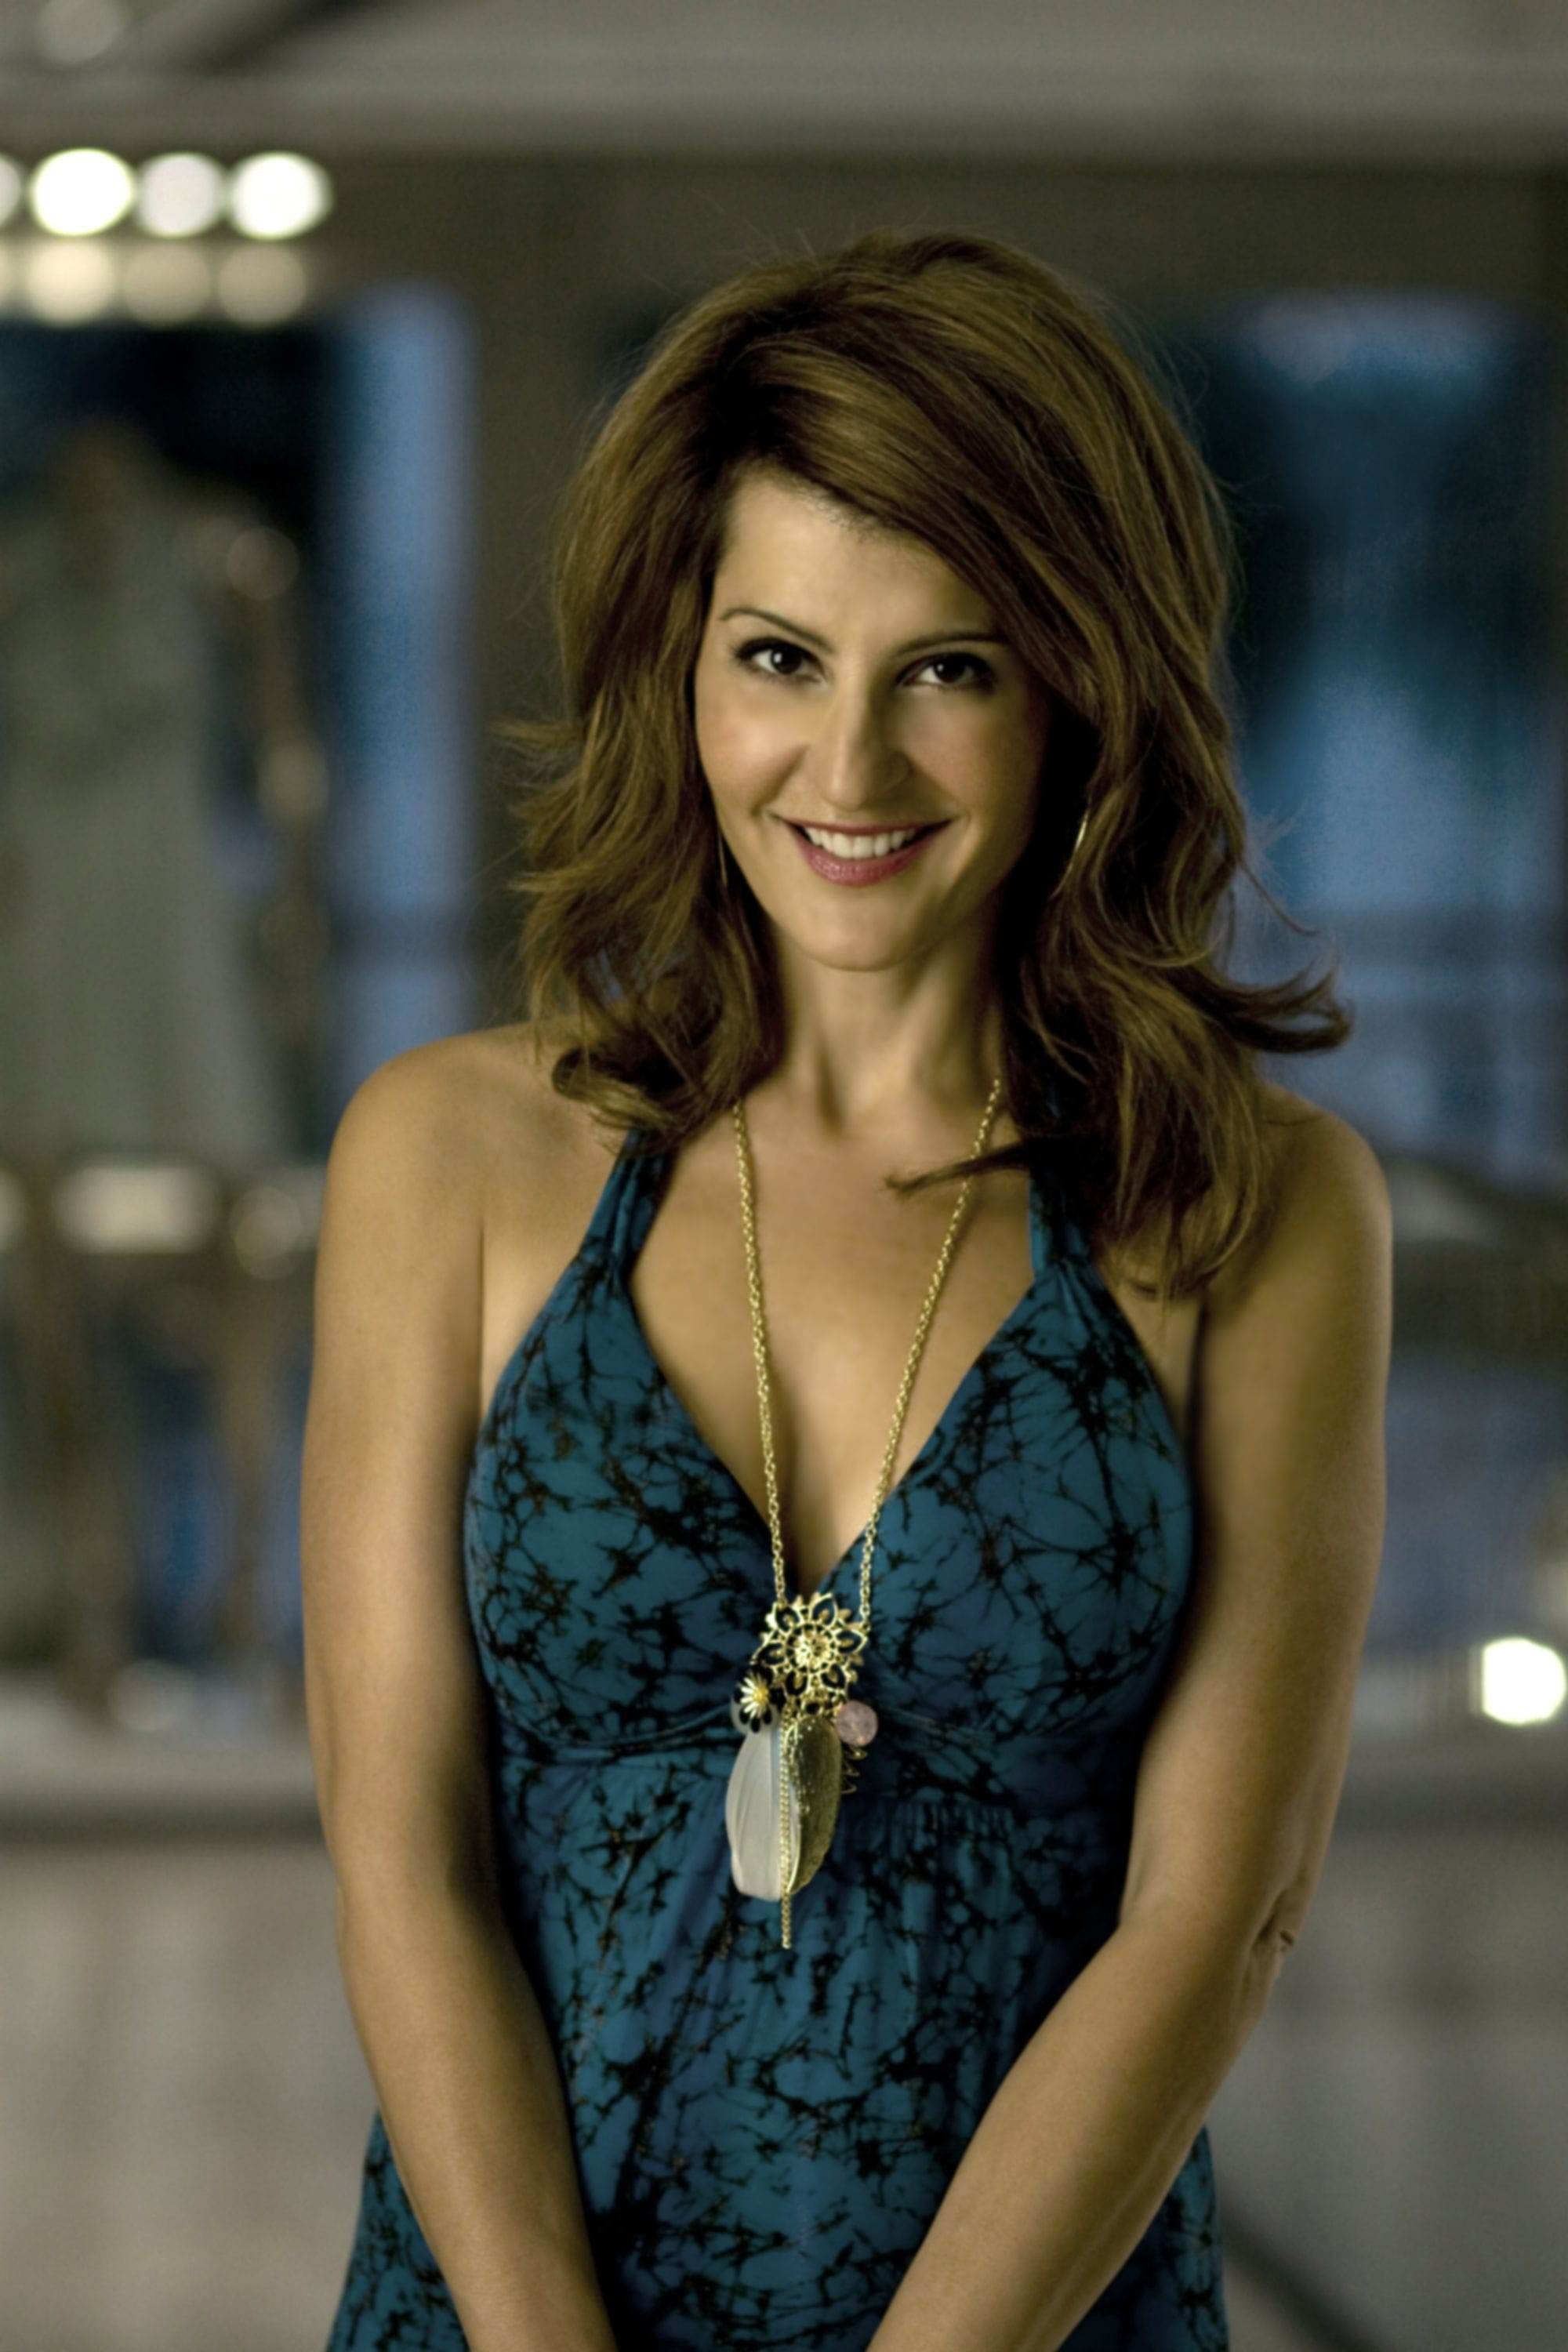 Nia Vardalos For mobile